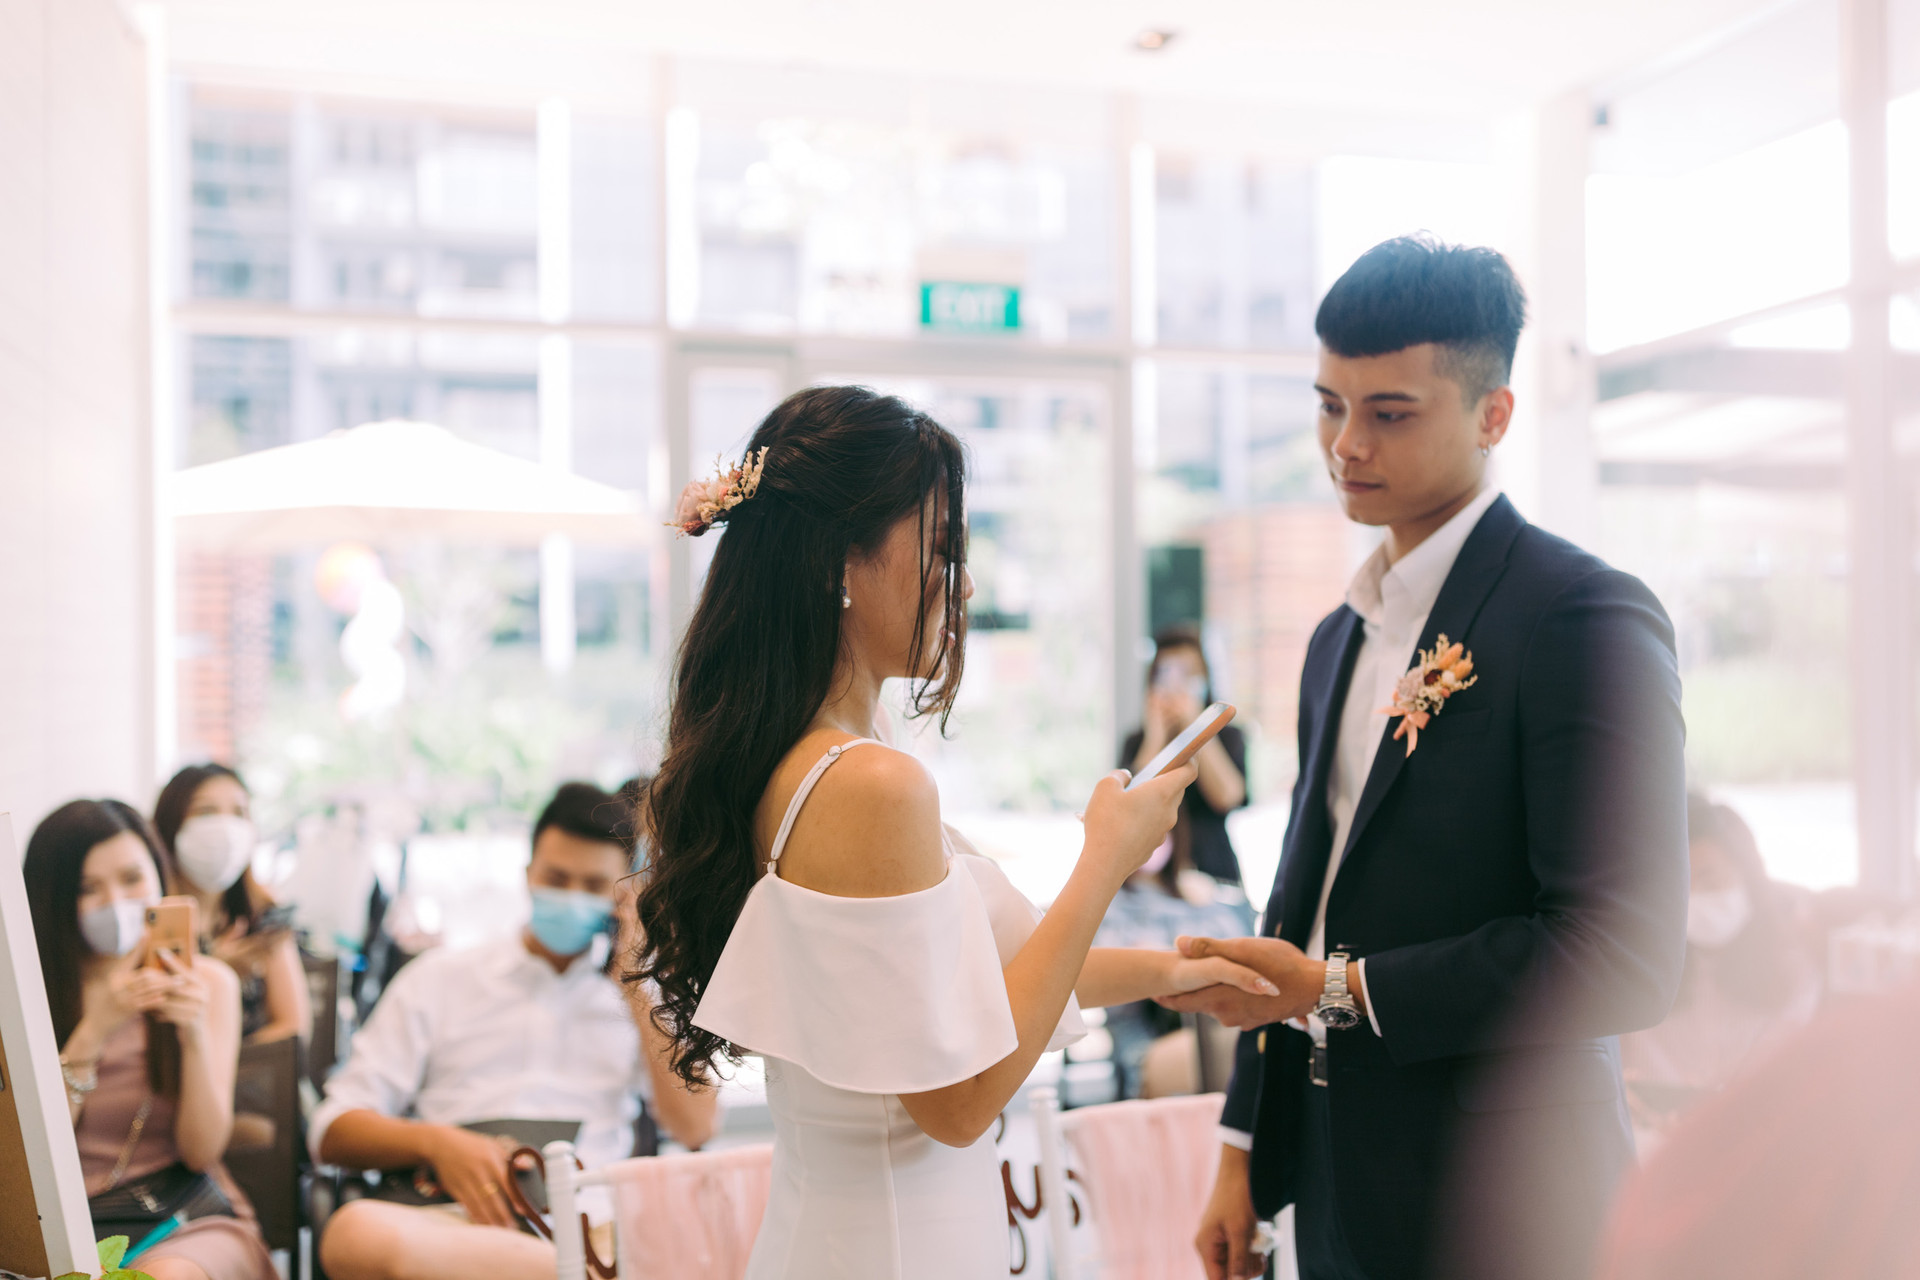 boonheng and jessica-211.jpg